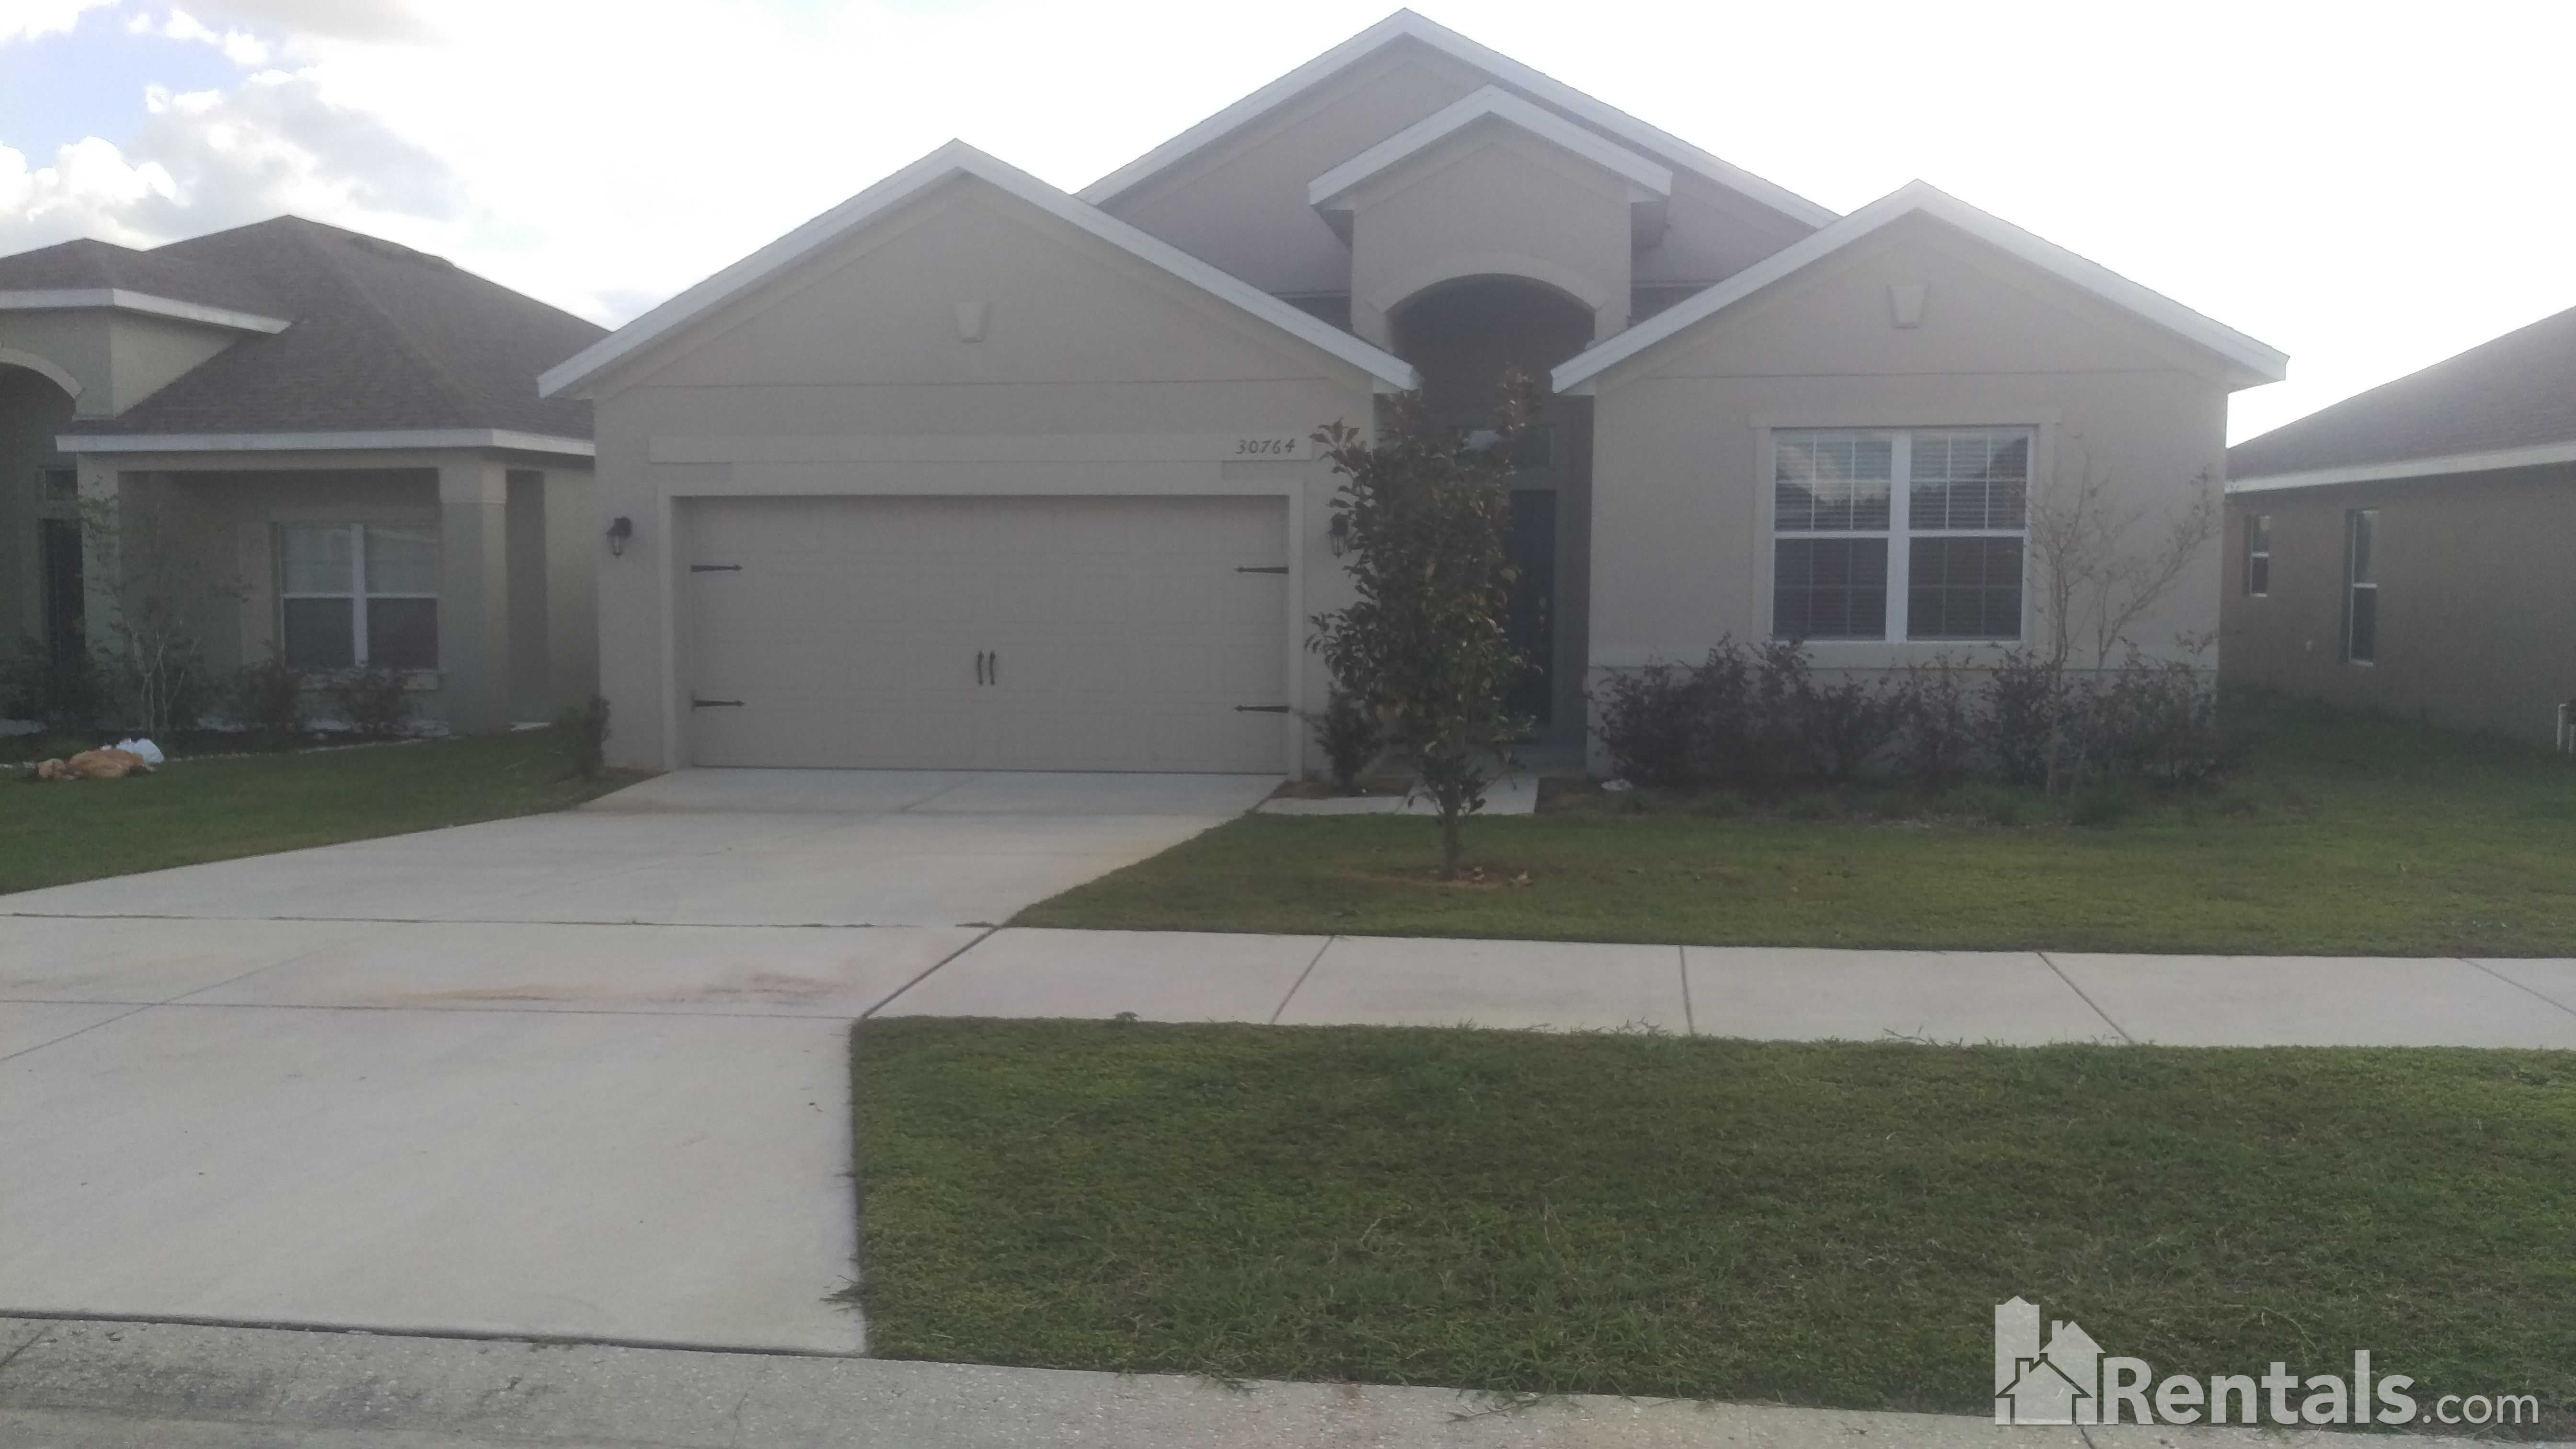 House for Rent in sherman Hills